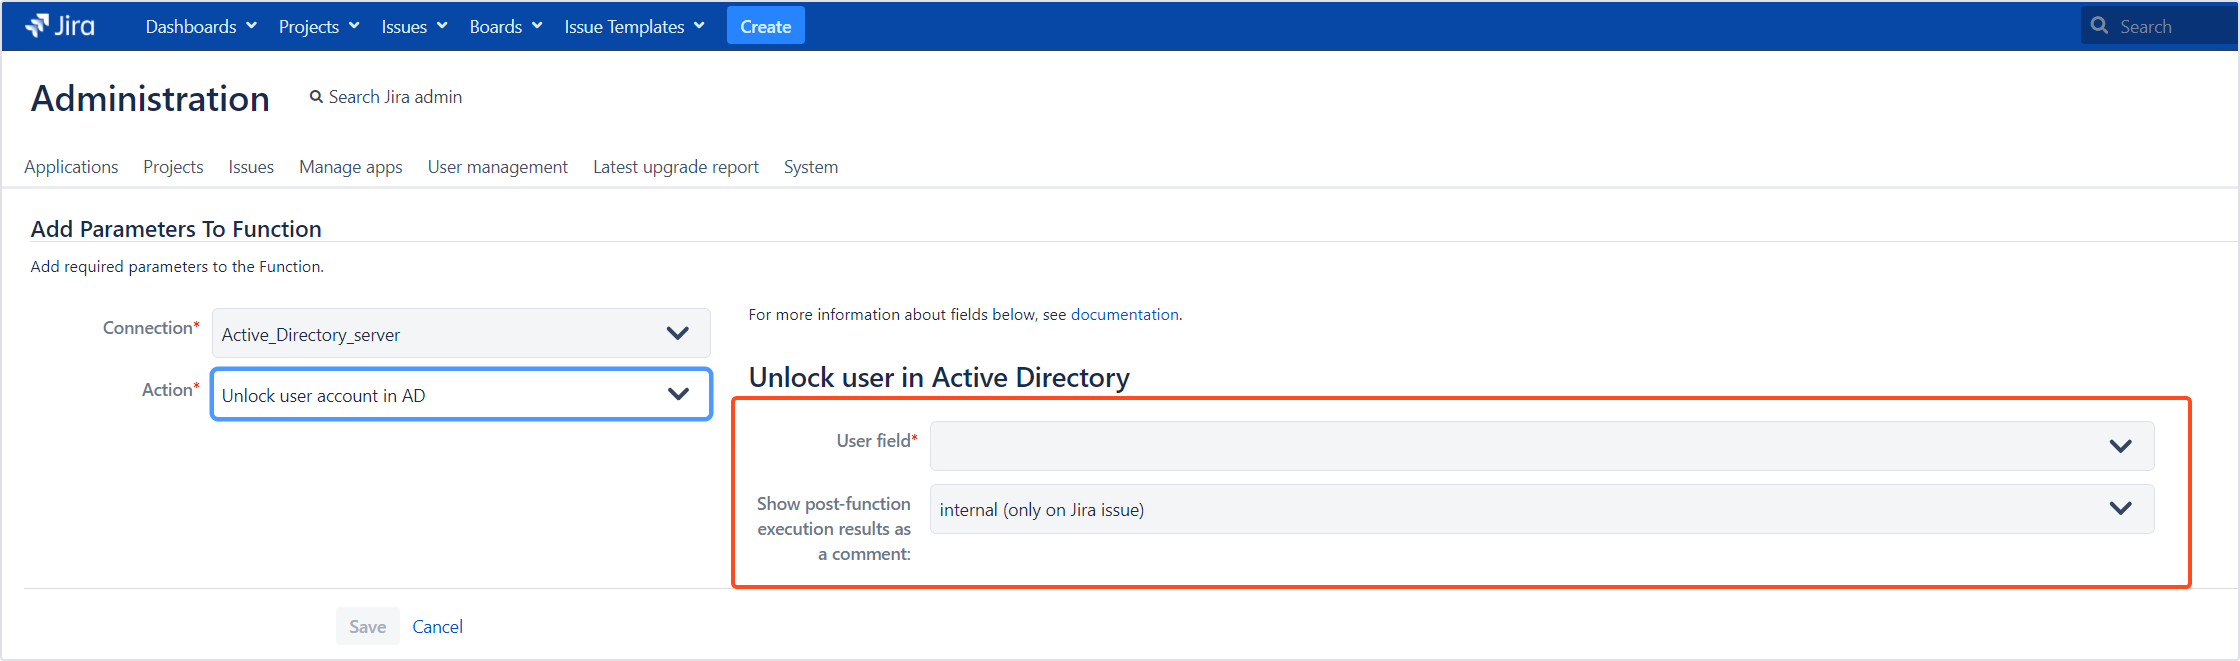 Active Directory Attributes Sync for Jira - Update Data: Unlock user account in AD